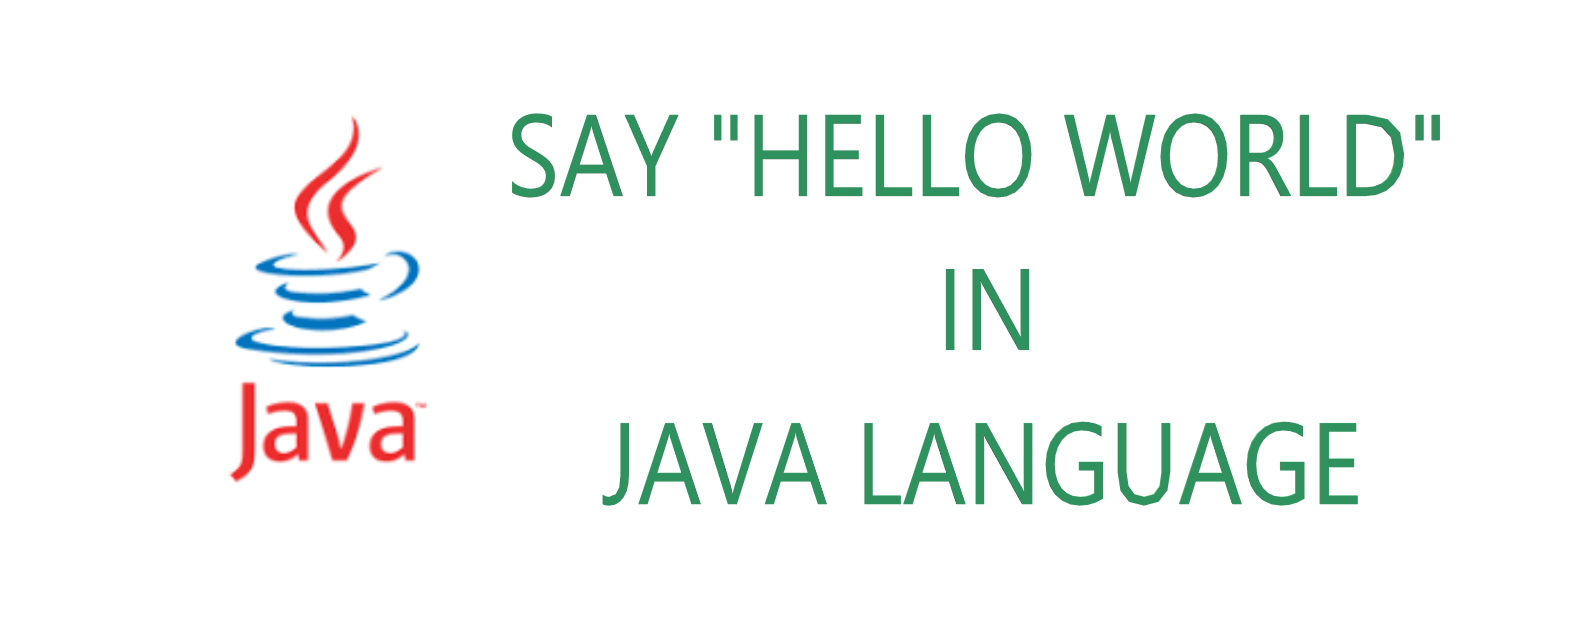 java. HelloWorld.